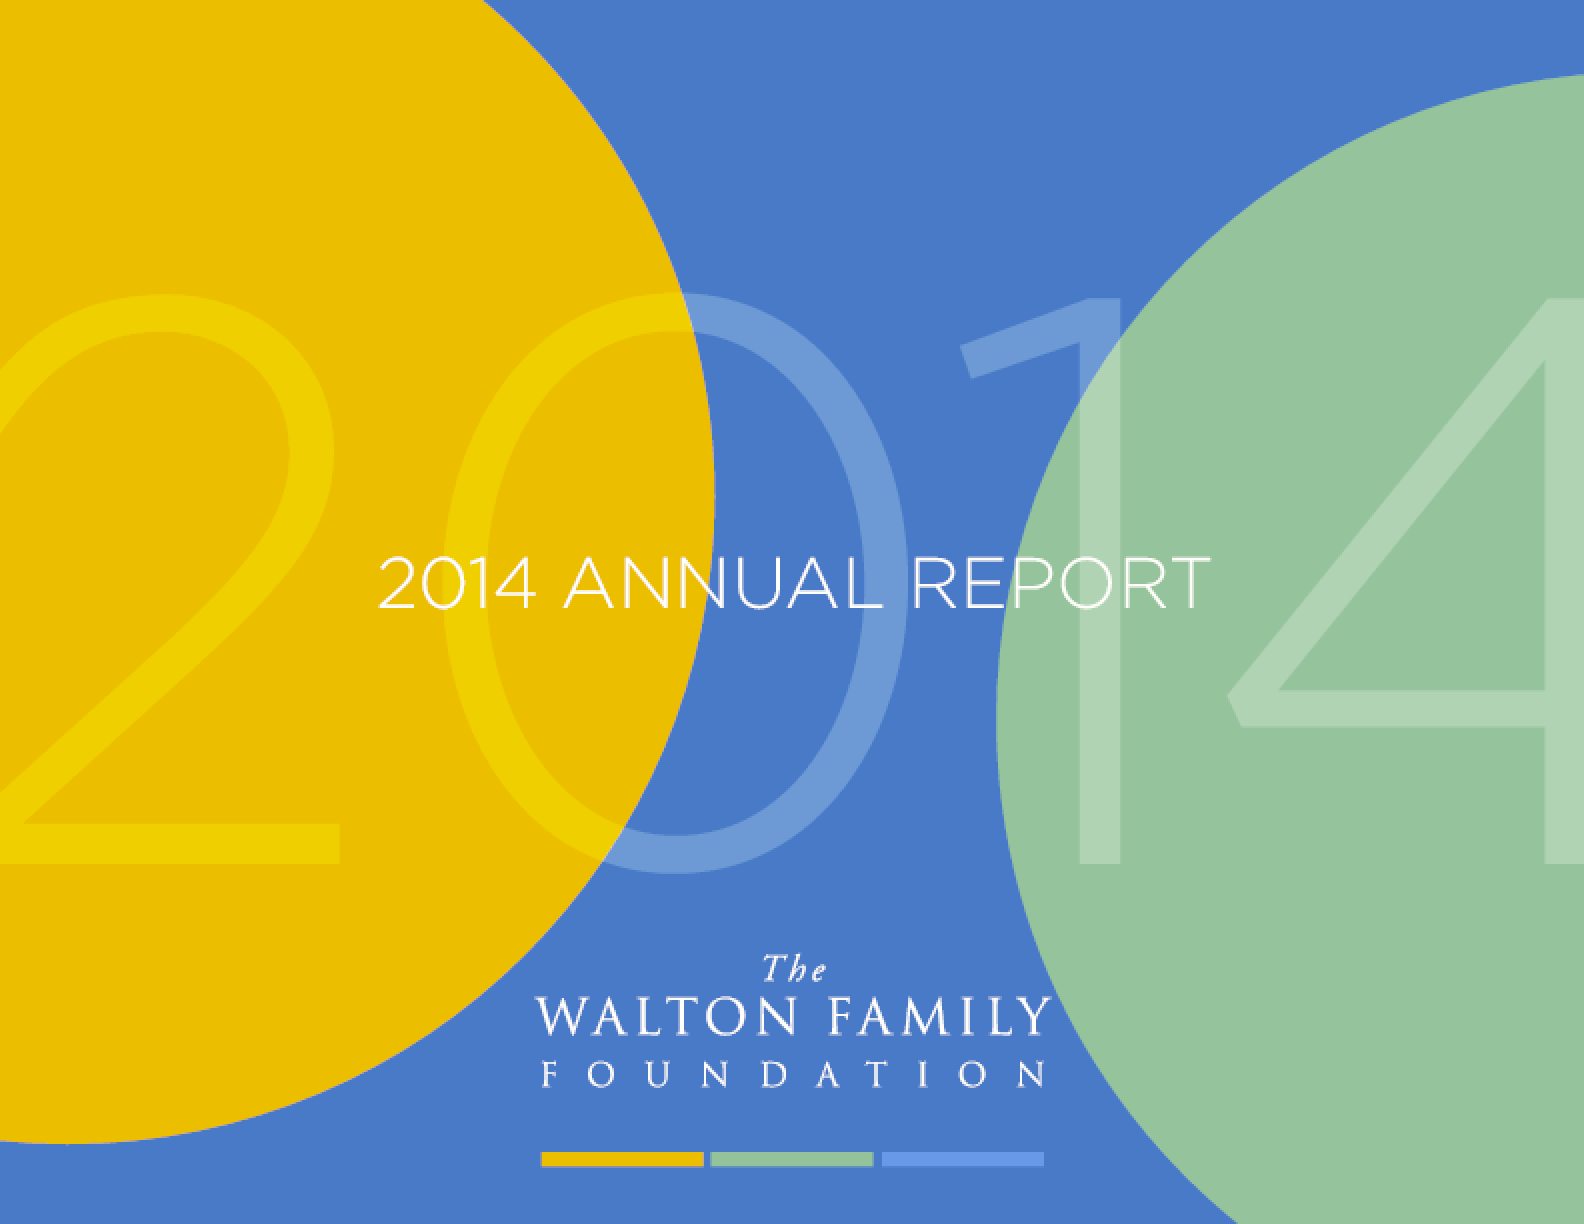 2014 Annual Report: The Walton Family Foundation